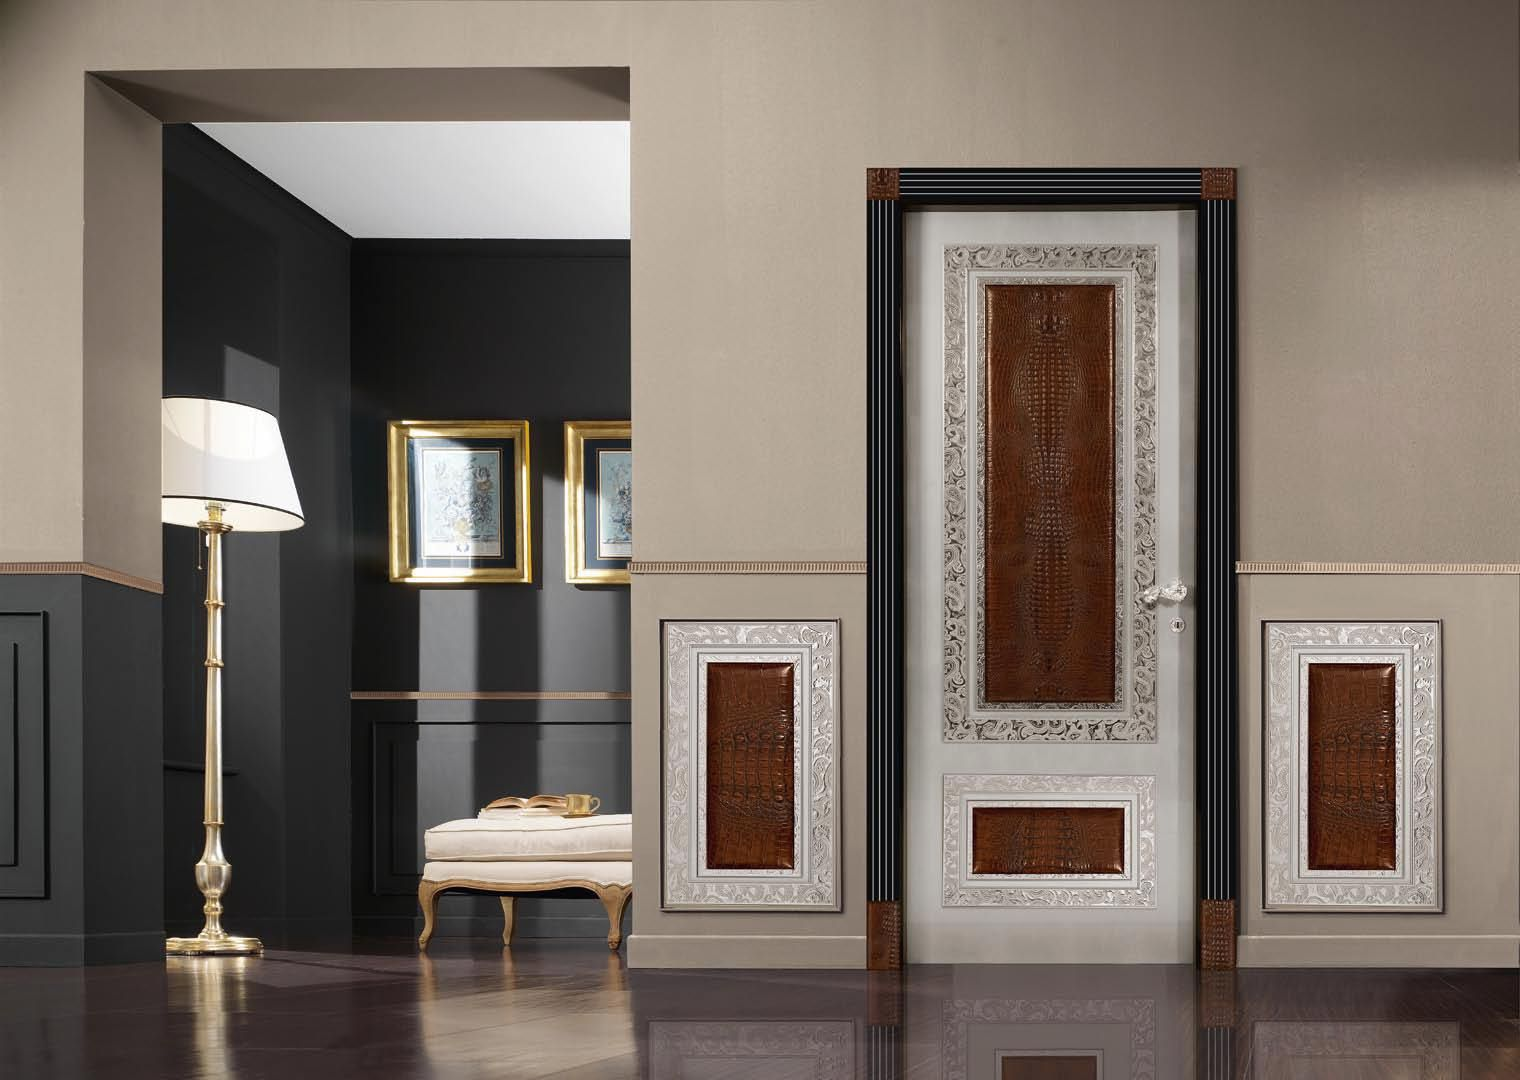 Interior doors how to choose a good interior door Choosing an interior designer